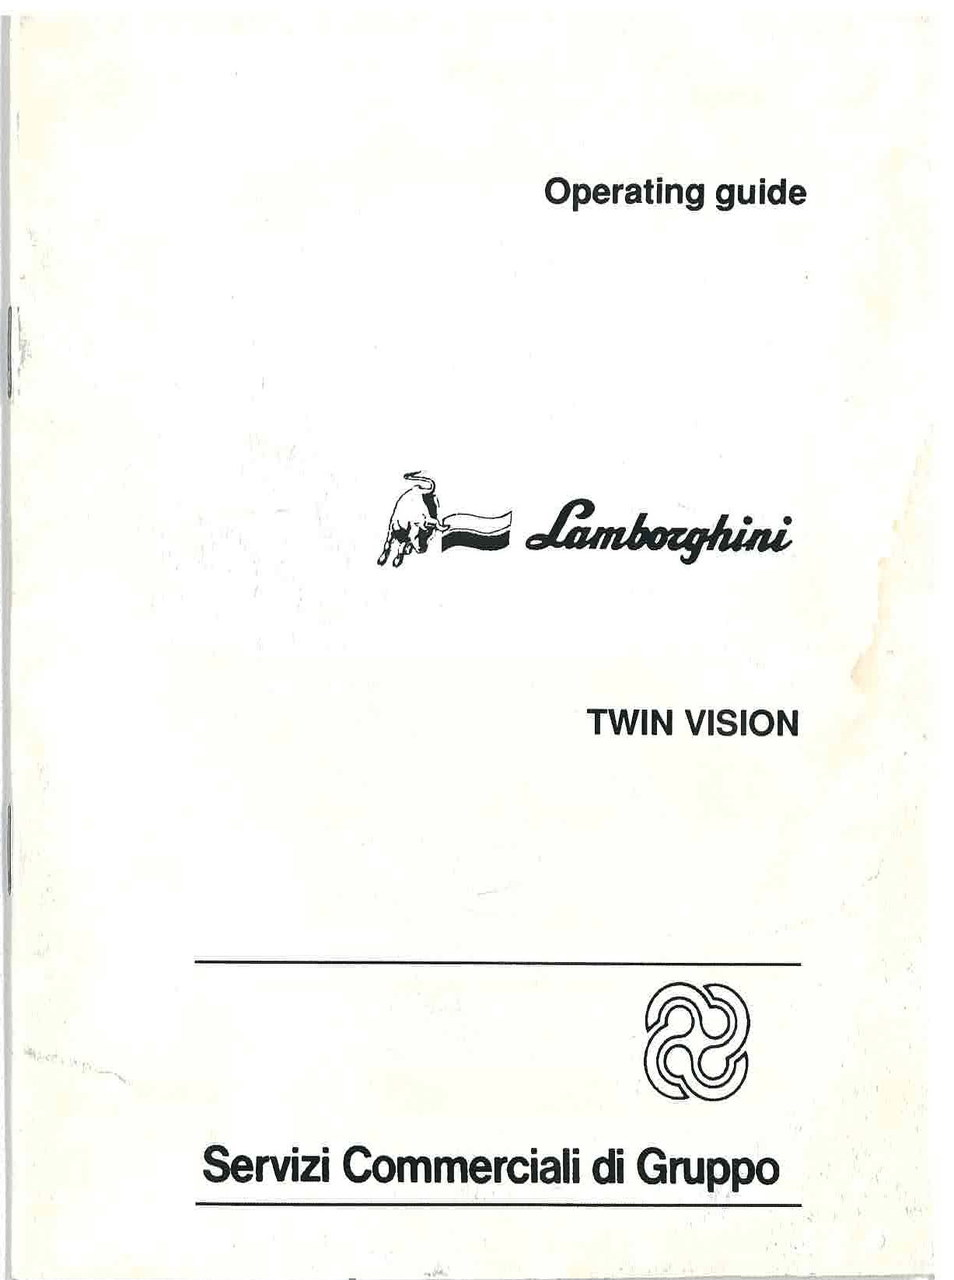 TWIN VISION - Operating and Maintenance